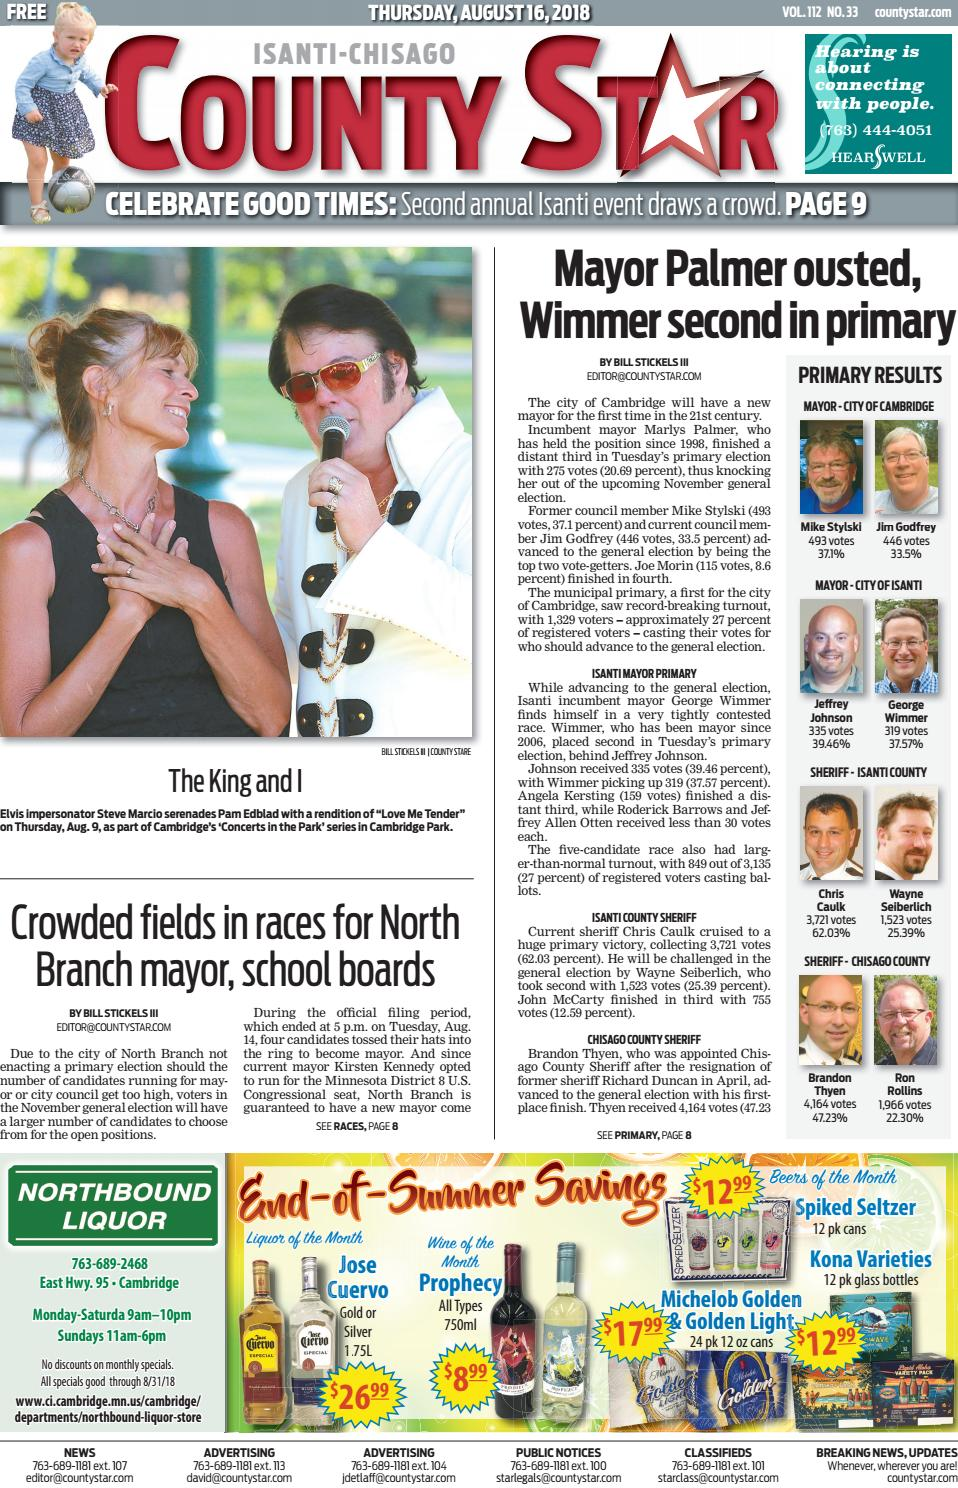 Isanti-Chisago County Star August 16, 2018 by Isanti-Chisago